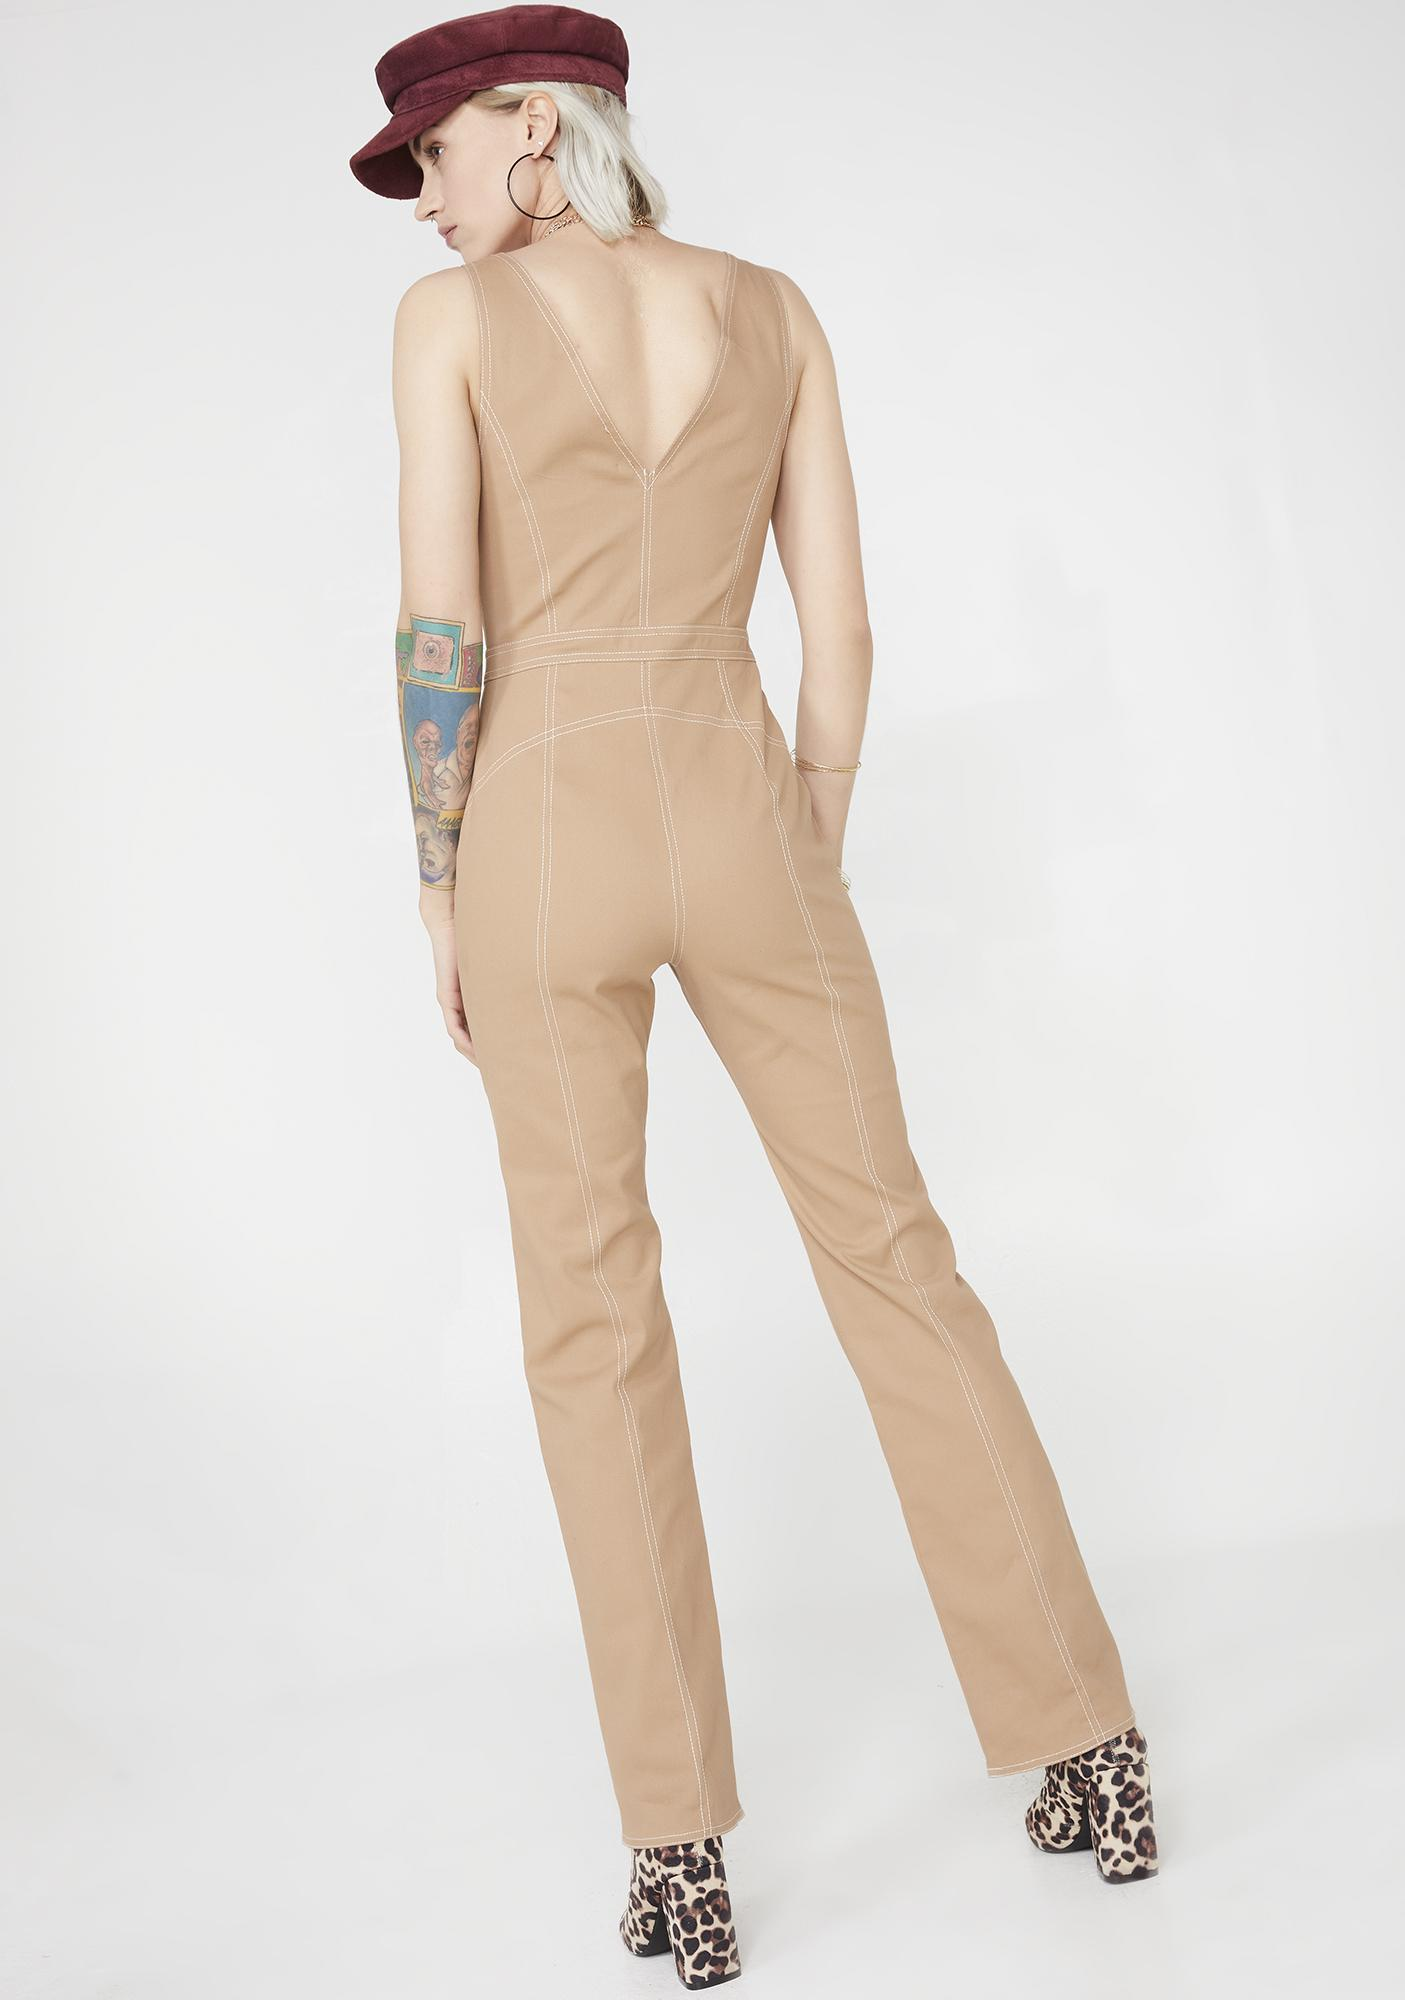 Tiger Mist Tan Ava Jumpsuit